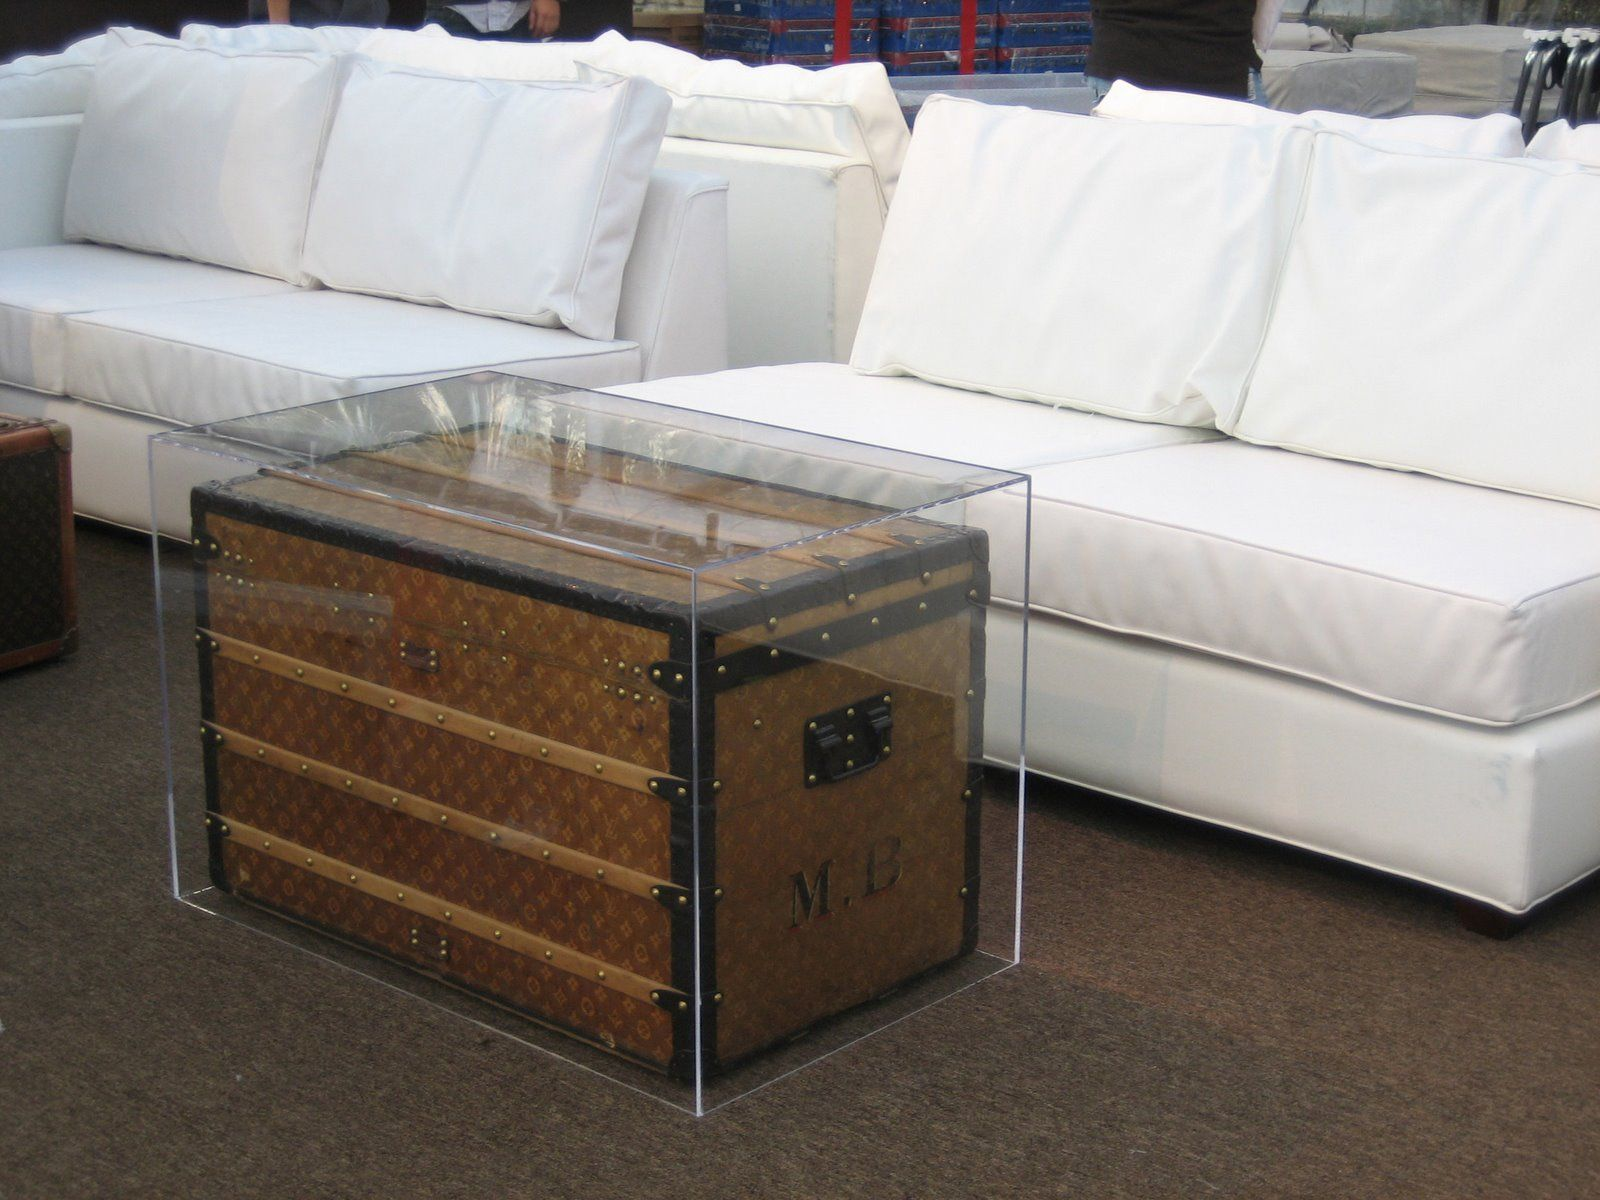 Antique Trunk Used As A Coffee Table. Inventive Plexiglass Cover Protects  The Trunck Surface!